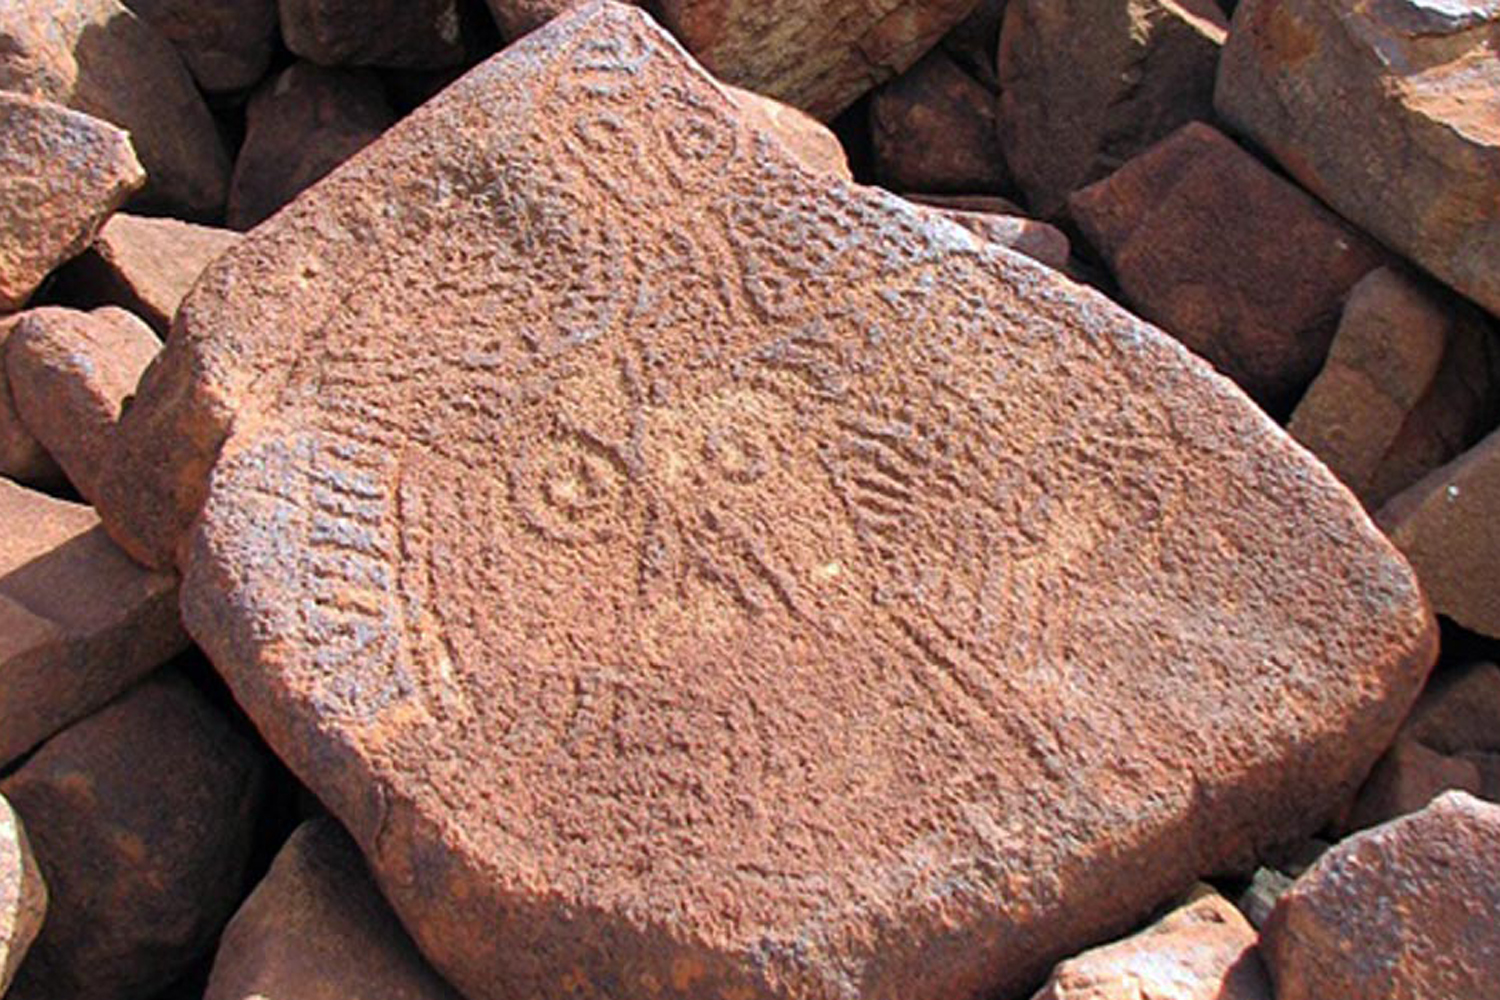 This Burrup petroglyph may be one of the oldest carved faces in the world / Photograph by Ken Mulvaney